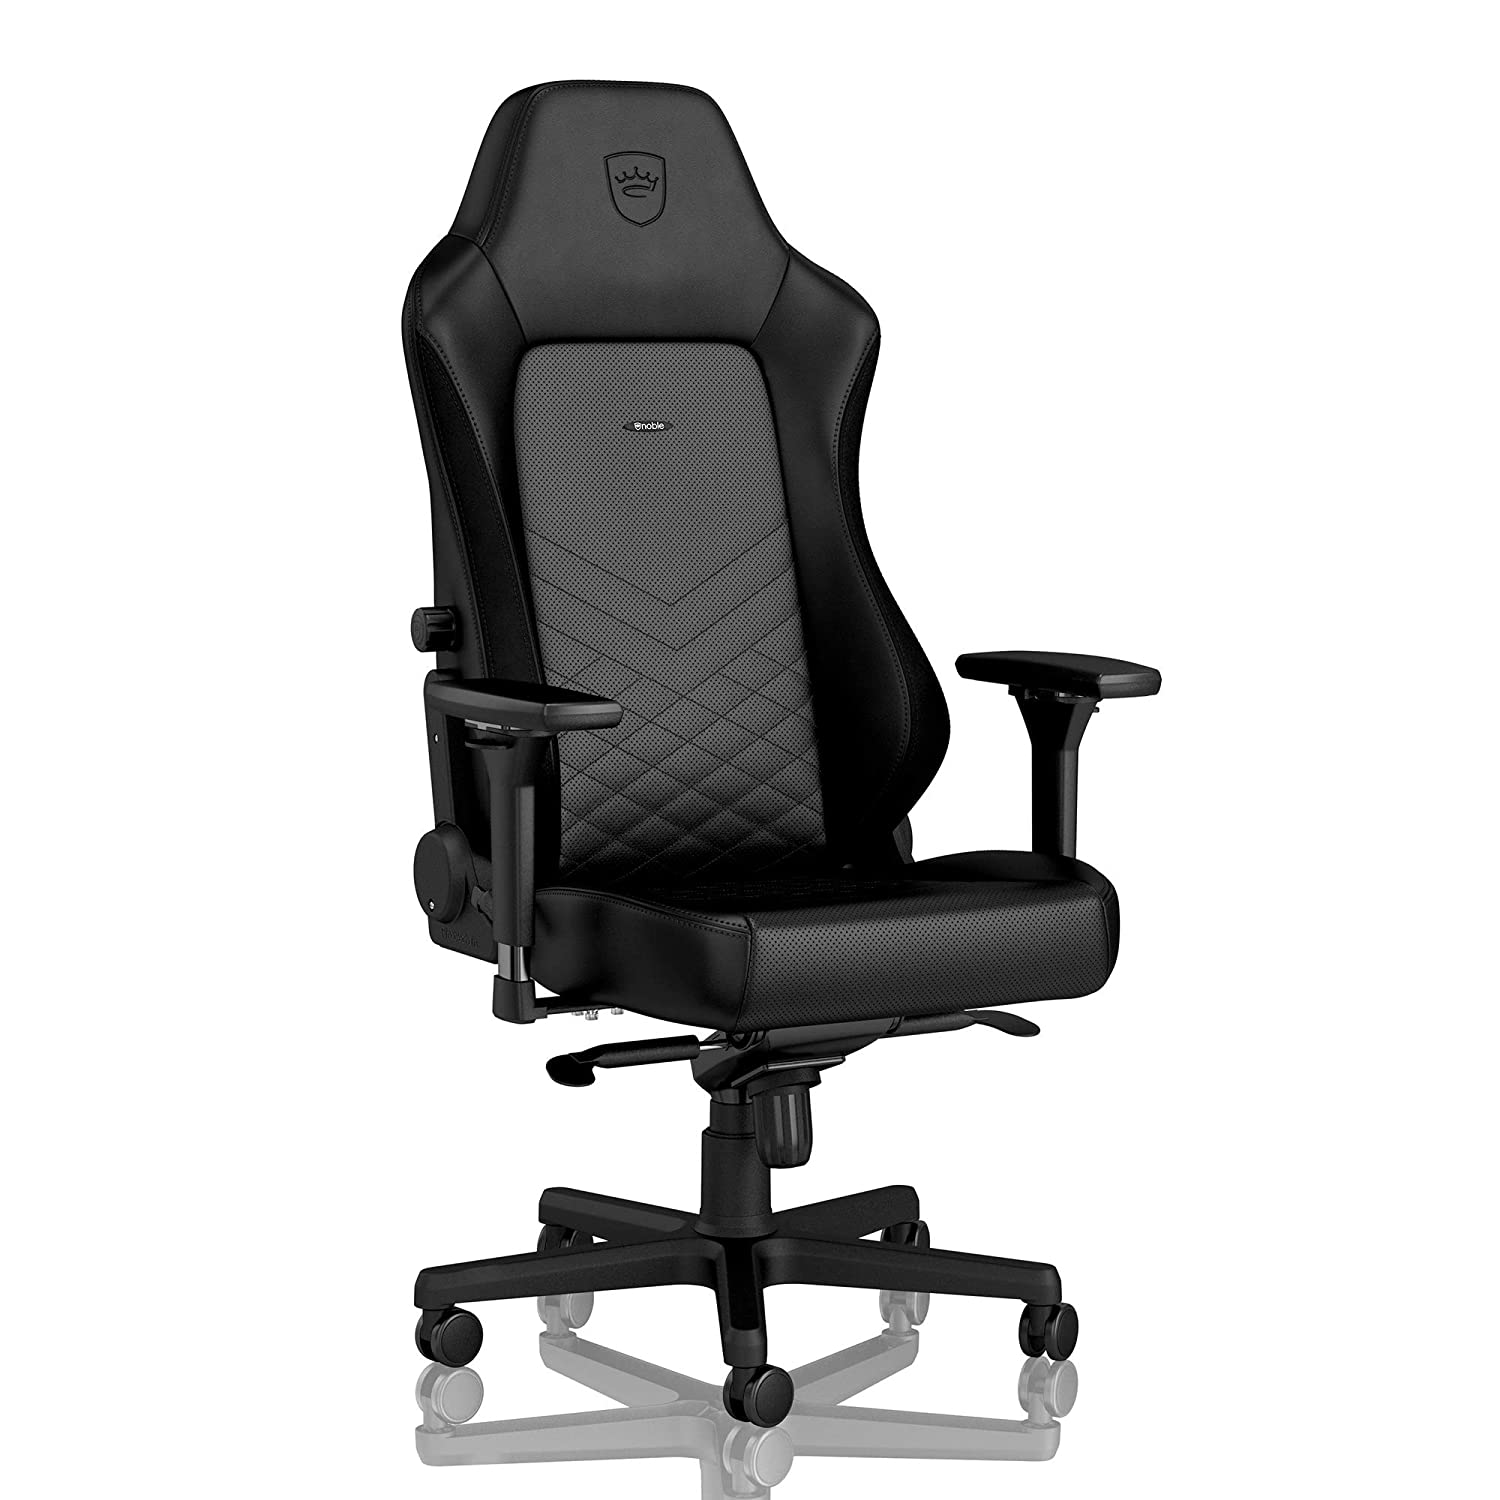 Fine Amazon Com Noblechairs Hero Gaming Chair Office Chair Pdpeps Interior Chair Design Pdpepsorg